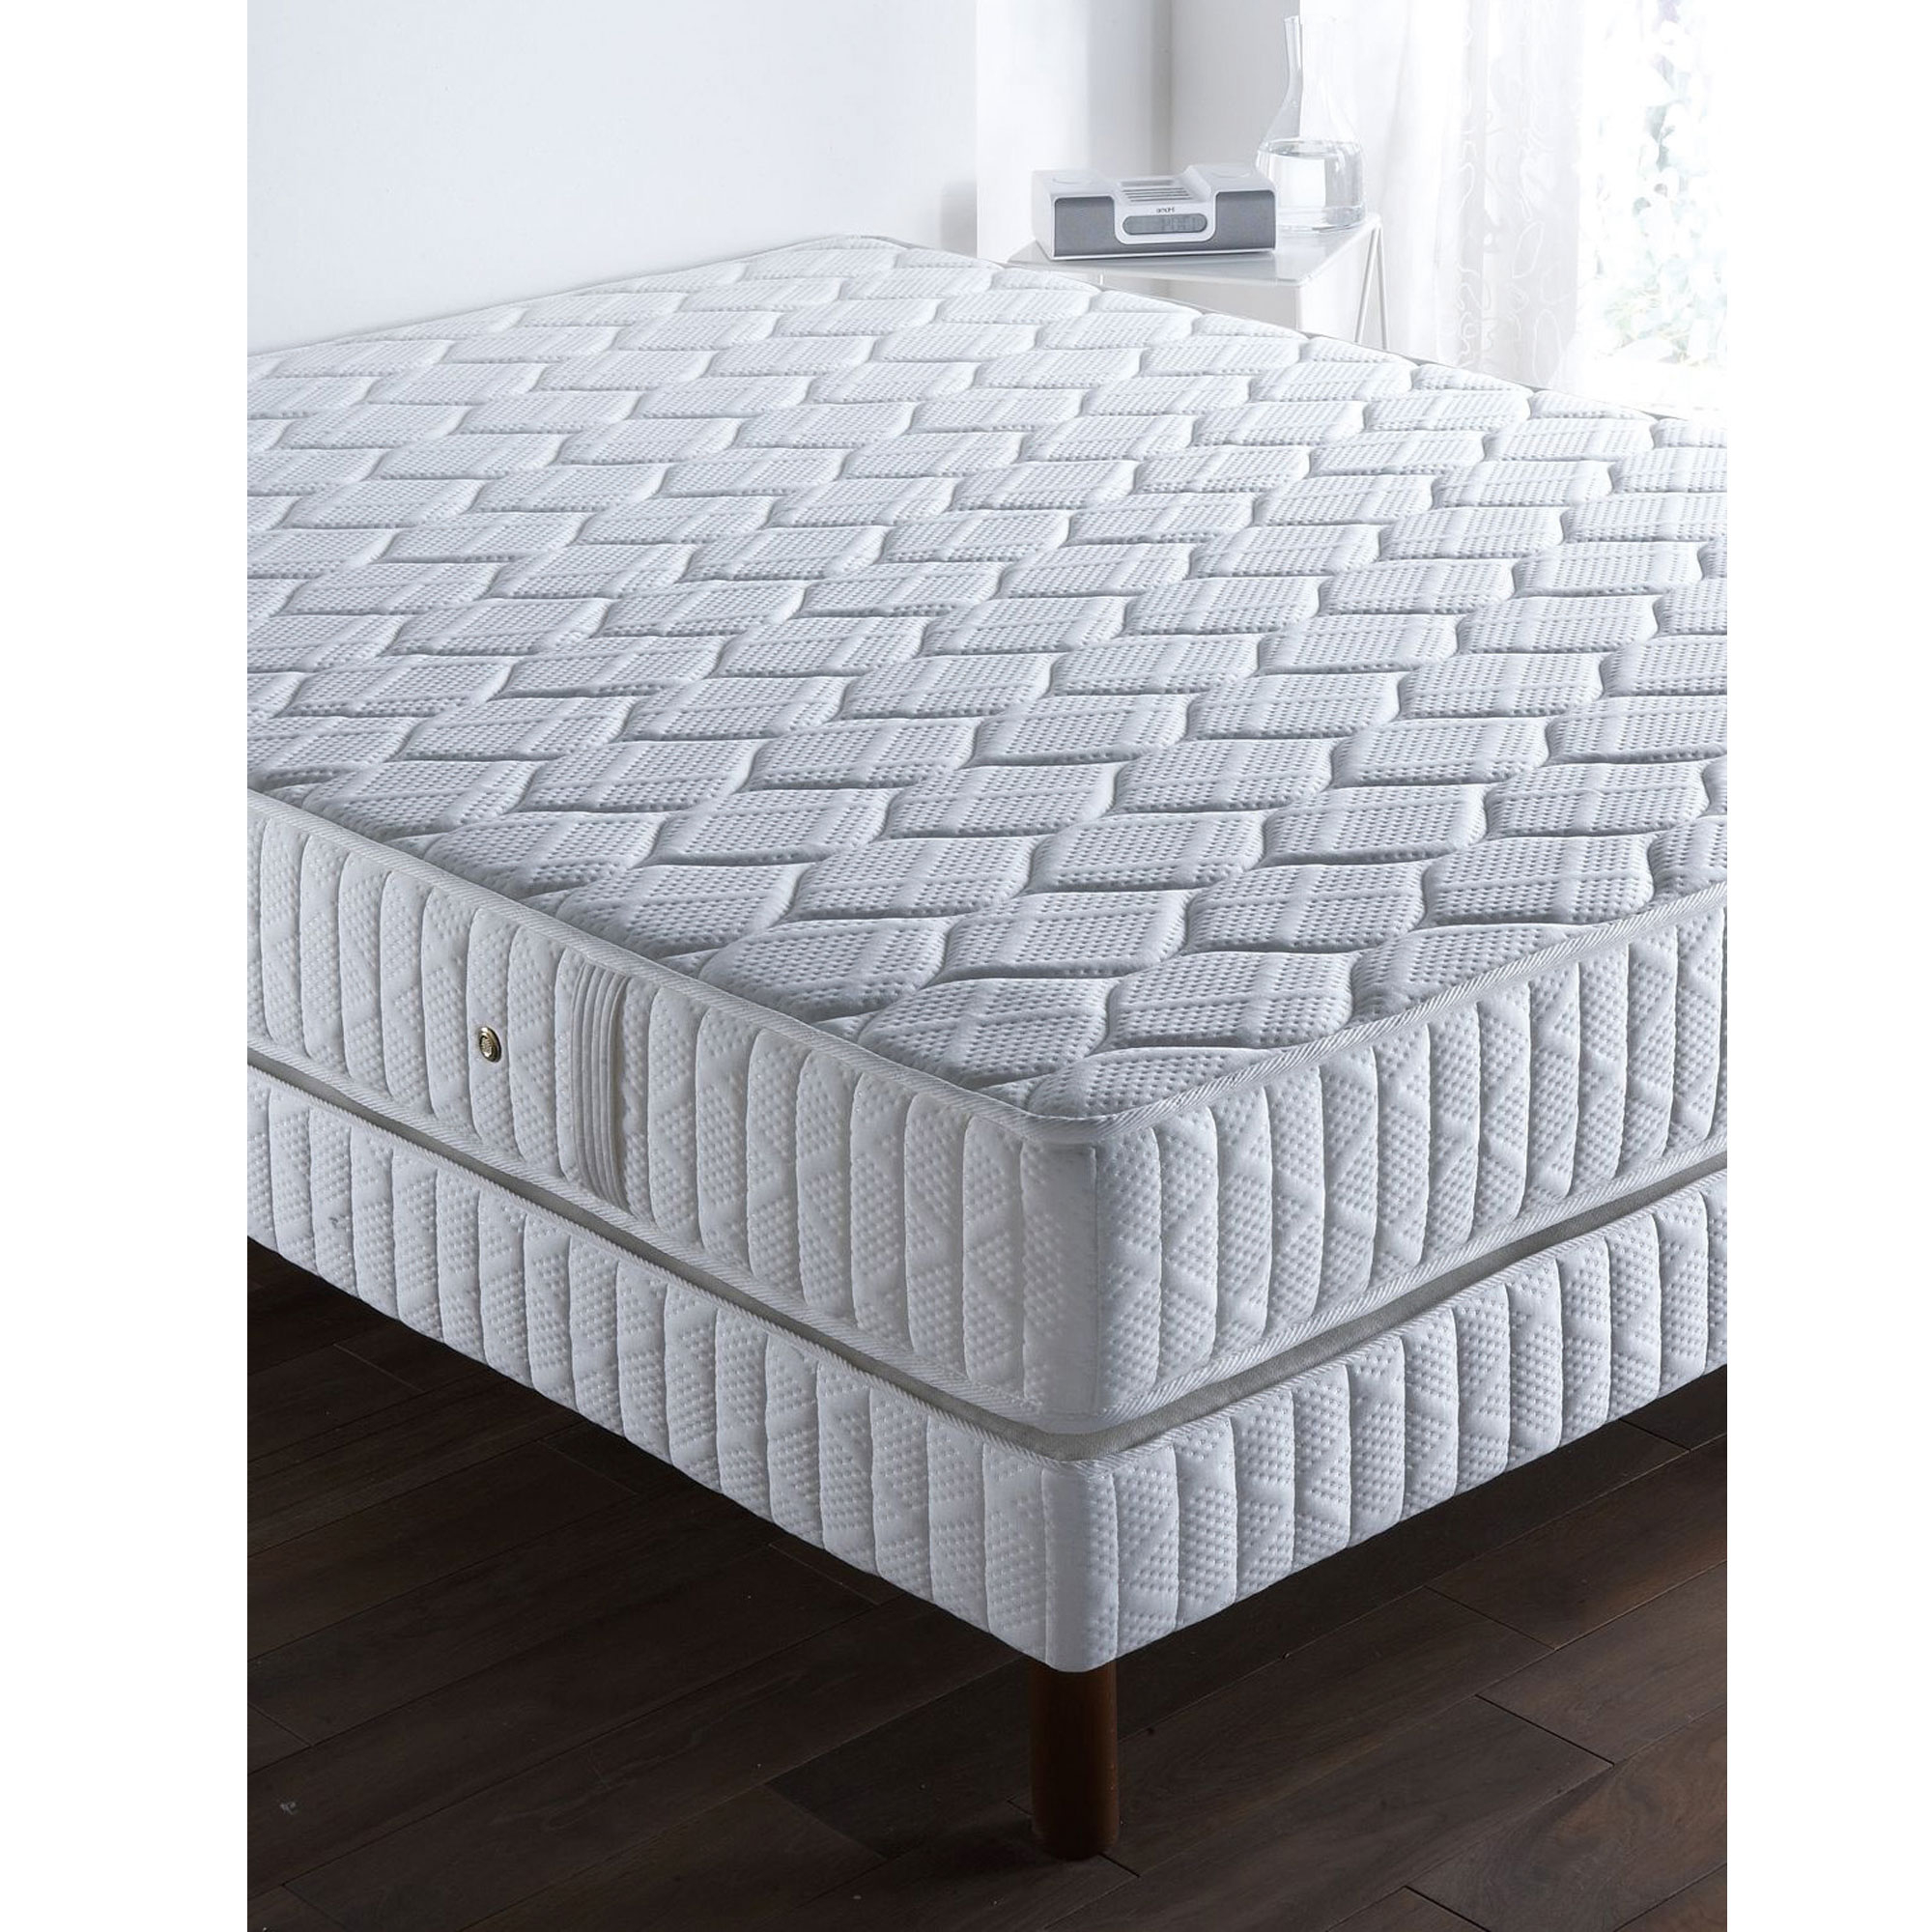 matelas ressorts ensachs 160x200 pas cher great beautiful awesome simmons matelas ressorts. Black Bedroom Furniture Sets. Home Design Ideas